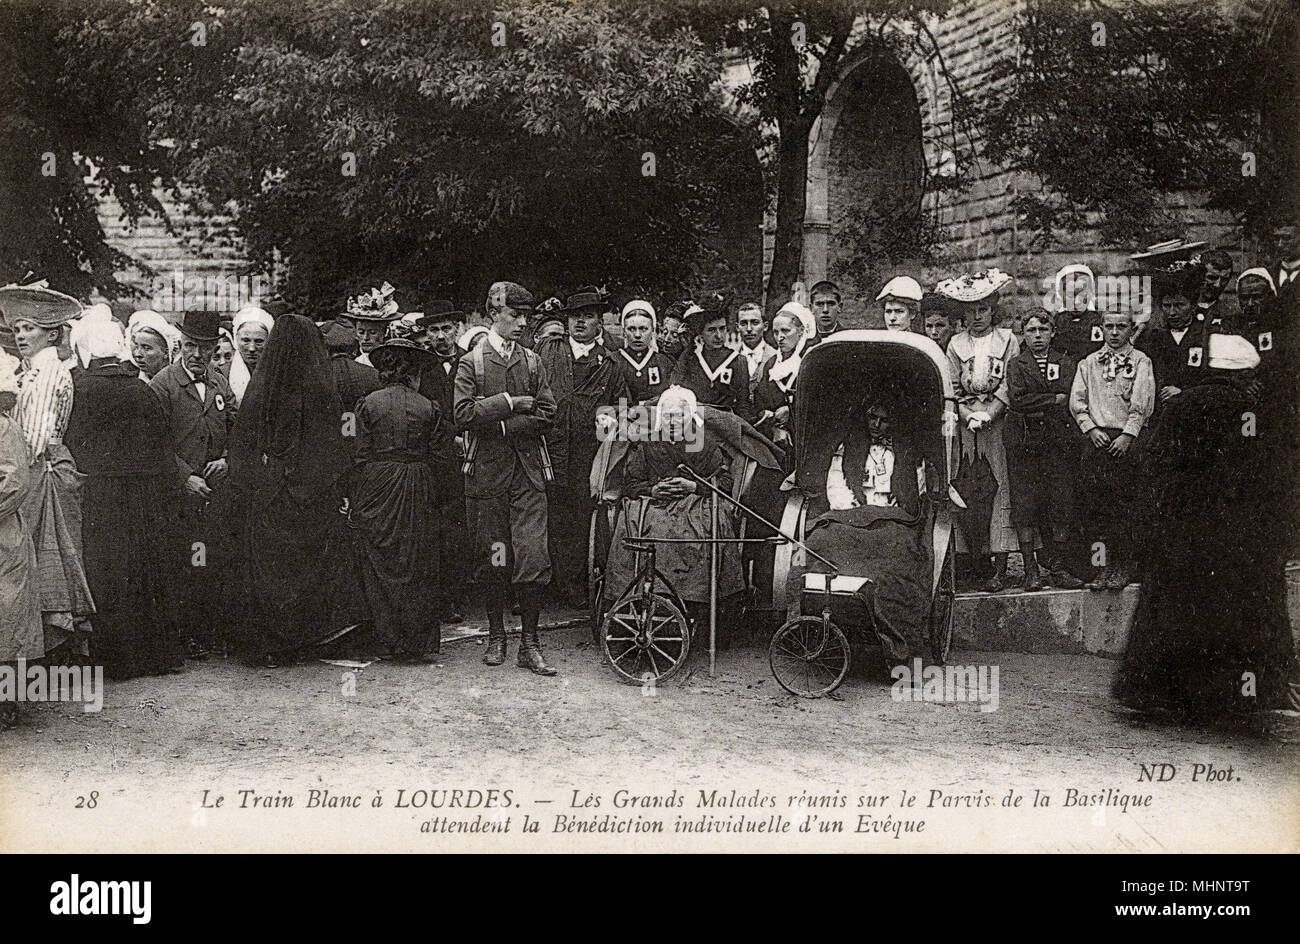 The 'White Train' at Lourdes. The Sick gather on the forecourt of the Basilica await the Individual Blessing of a Bishop.     Date: circa 1910 - Stock Image